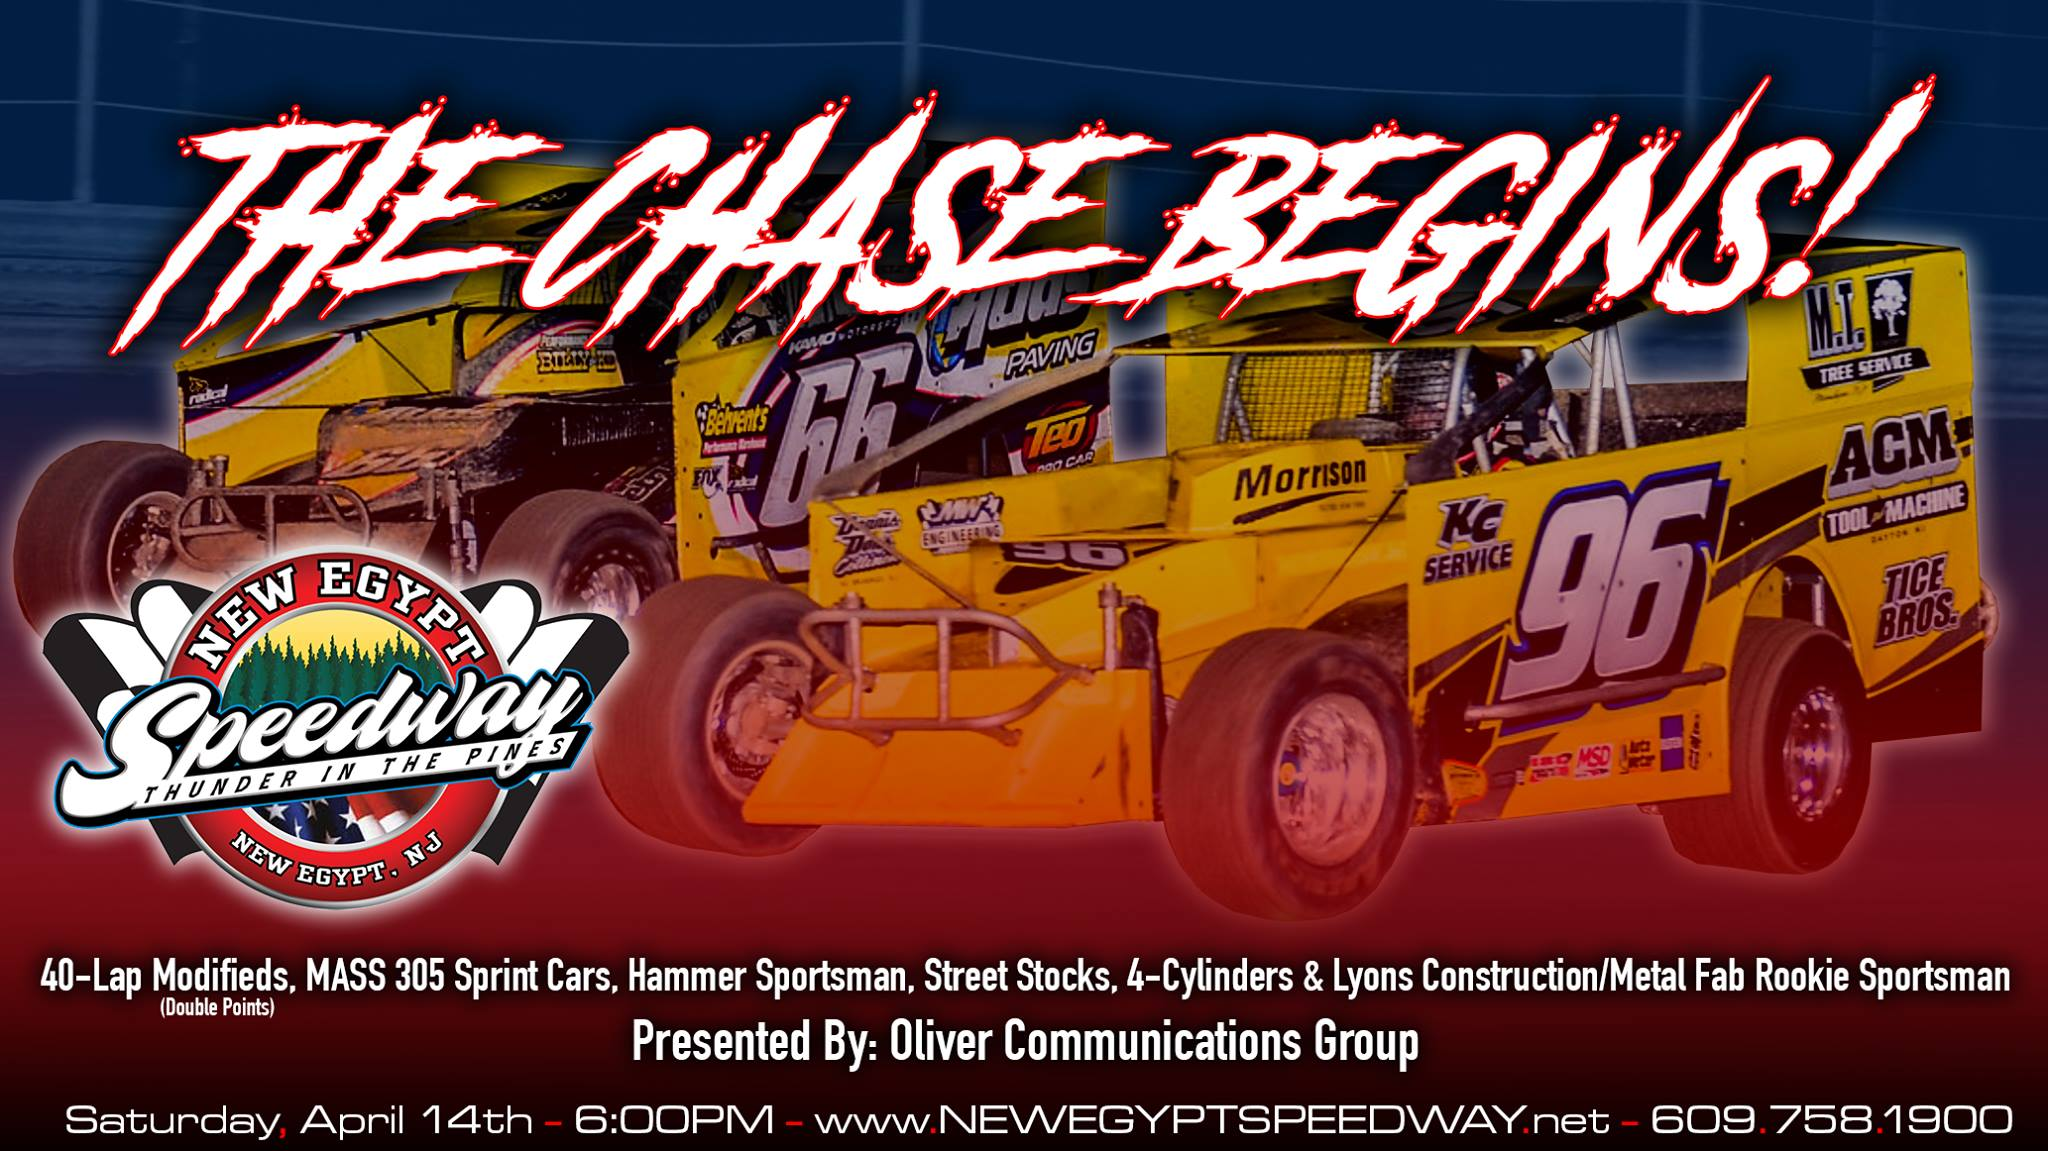 New Egypt, NJ – Points races begin thiscoming Saturdaynight April 14thwhen Oliver Communications Group presents Opening Day at New Egypt Speedway.